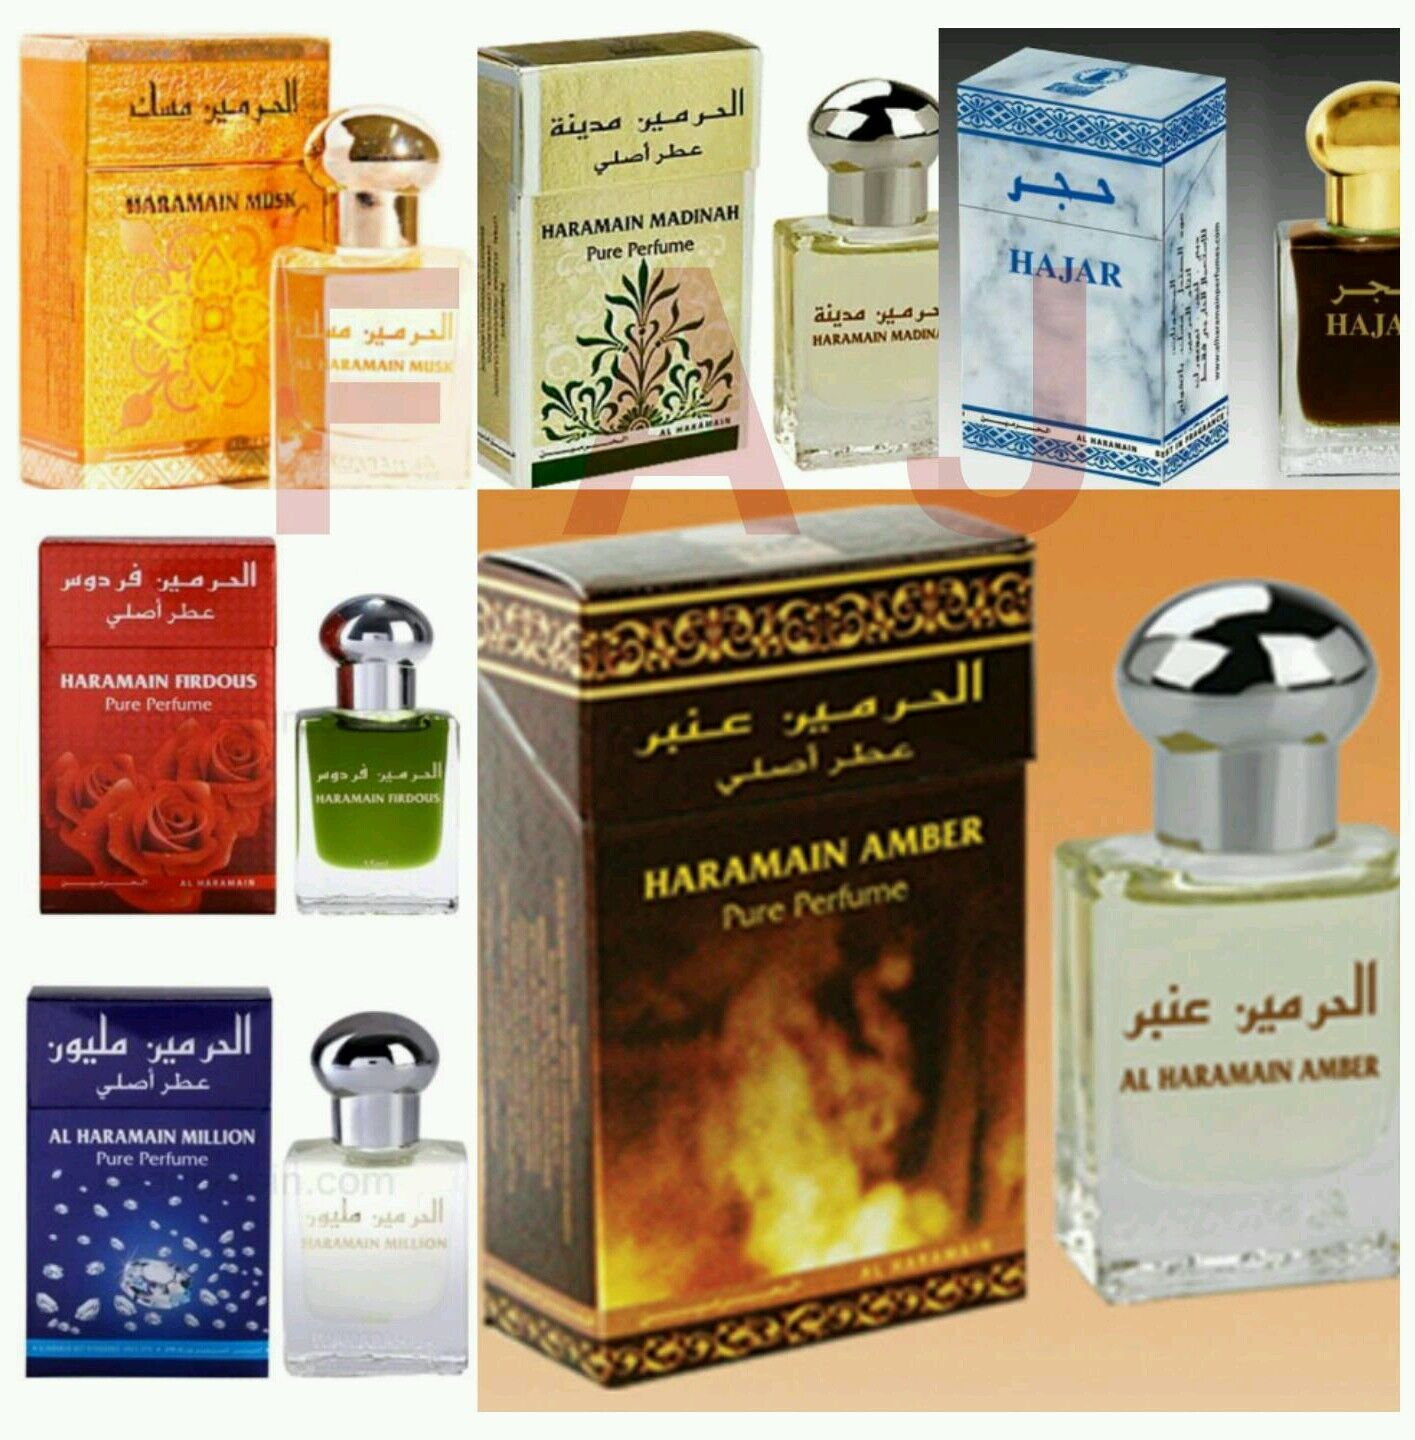 Al Haramain Concentrated Arabian Perfume,attar,itr, Non-alcoholic Fragrance Oil Image